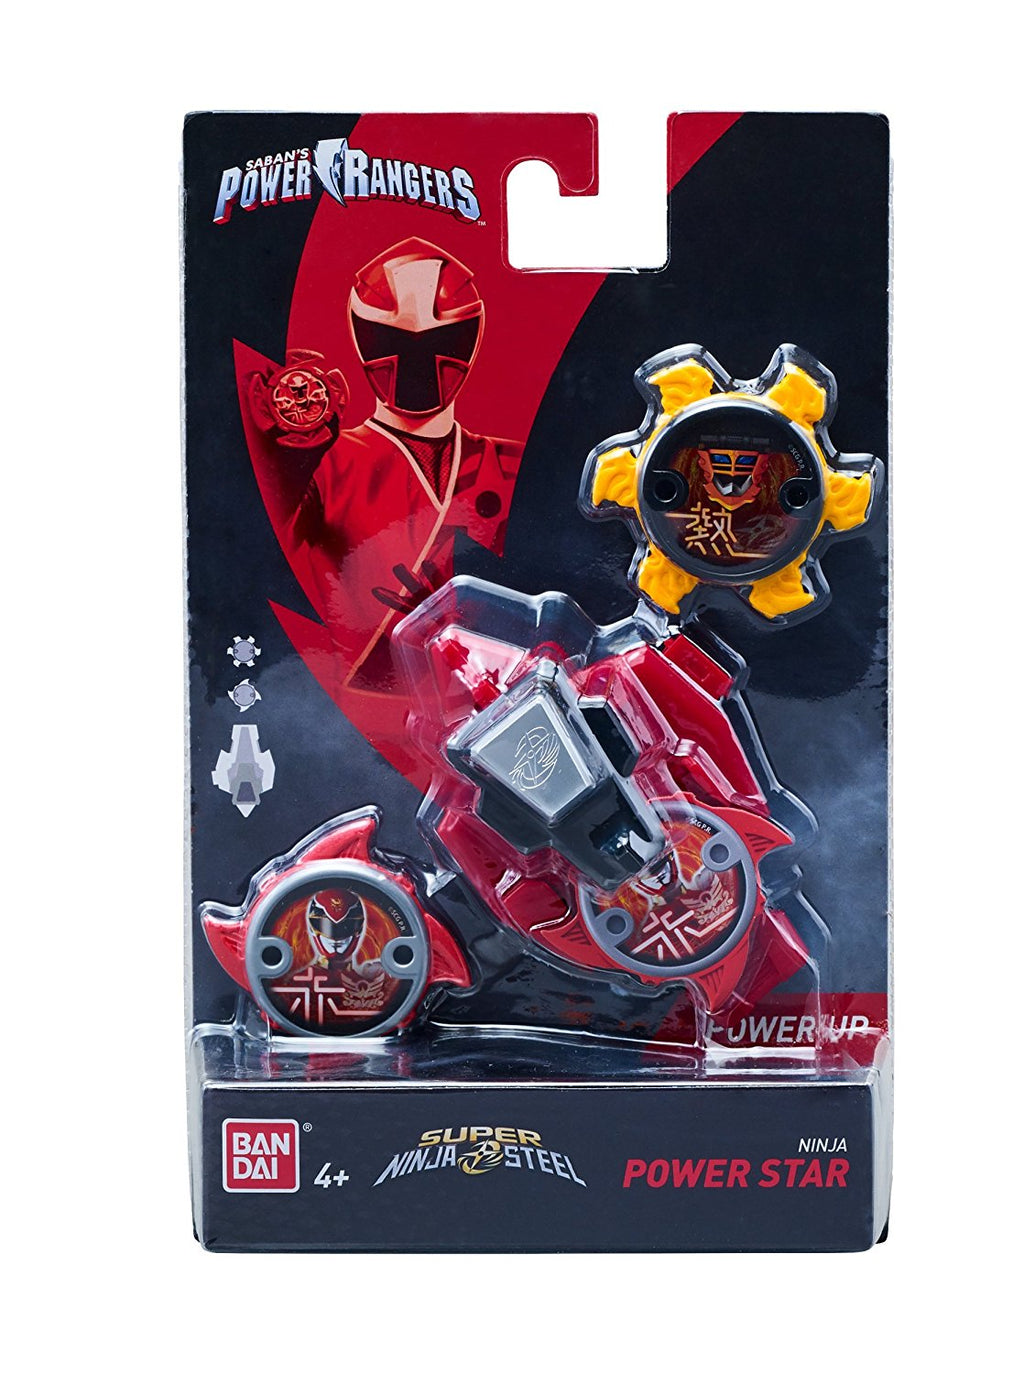 Power Rangers Super Steel Ninja Power Star Pack, Kodiak Zord - H-Town Toy Company